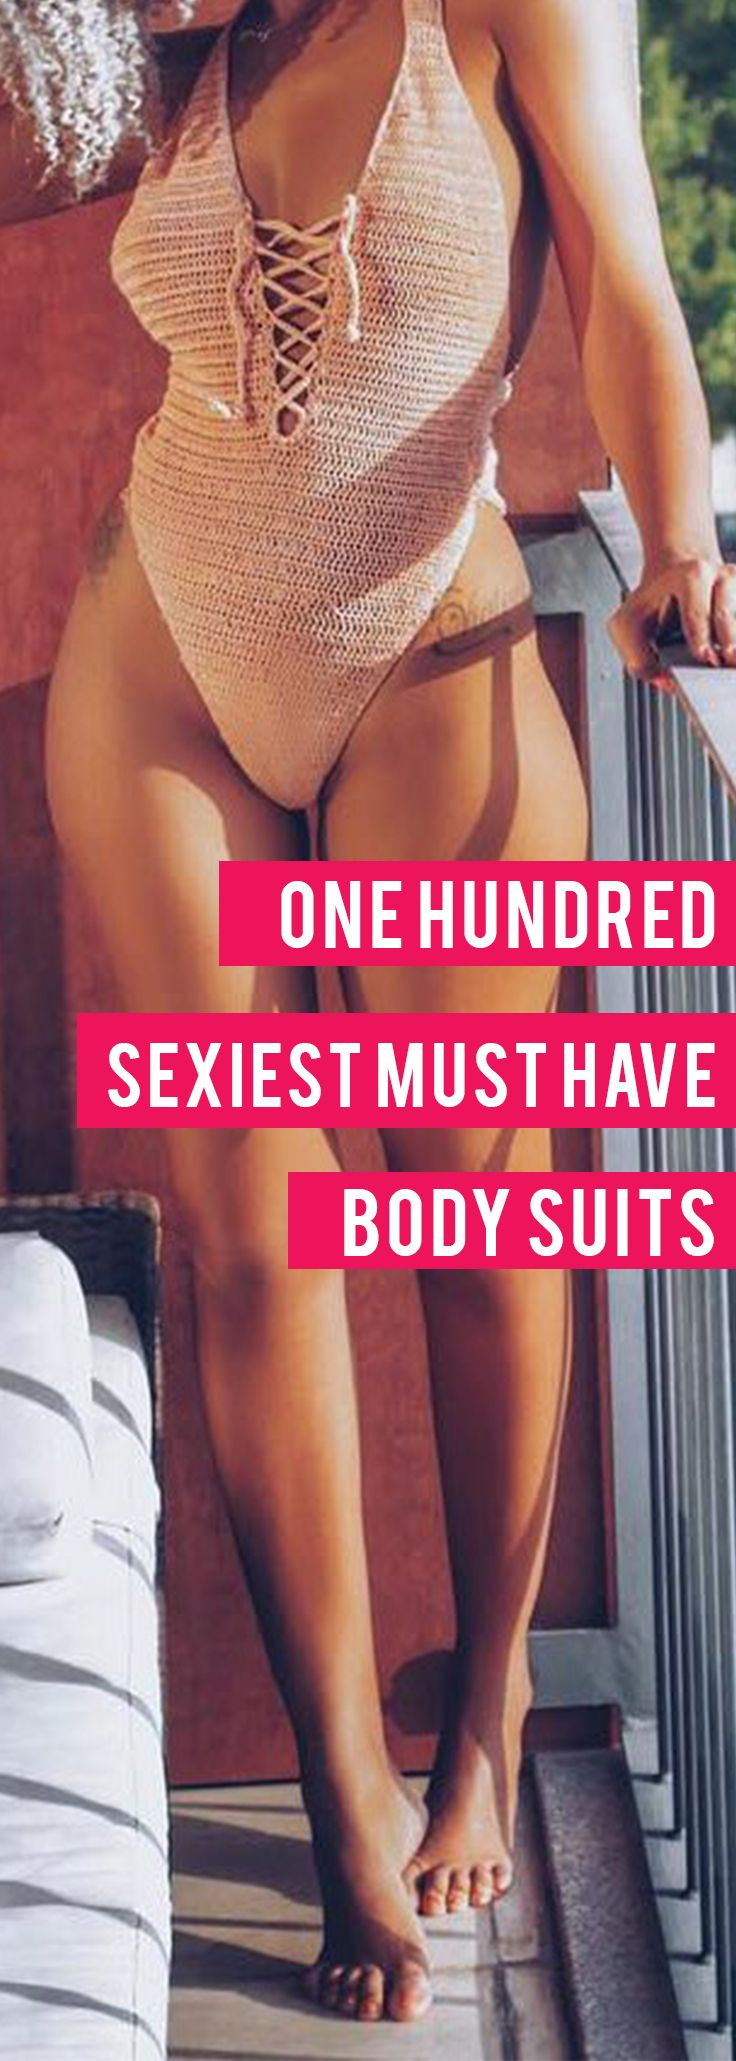 One hundred body suits every girl must have.